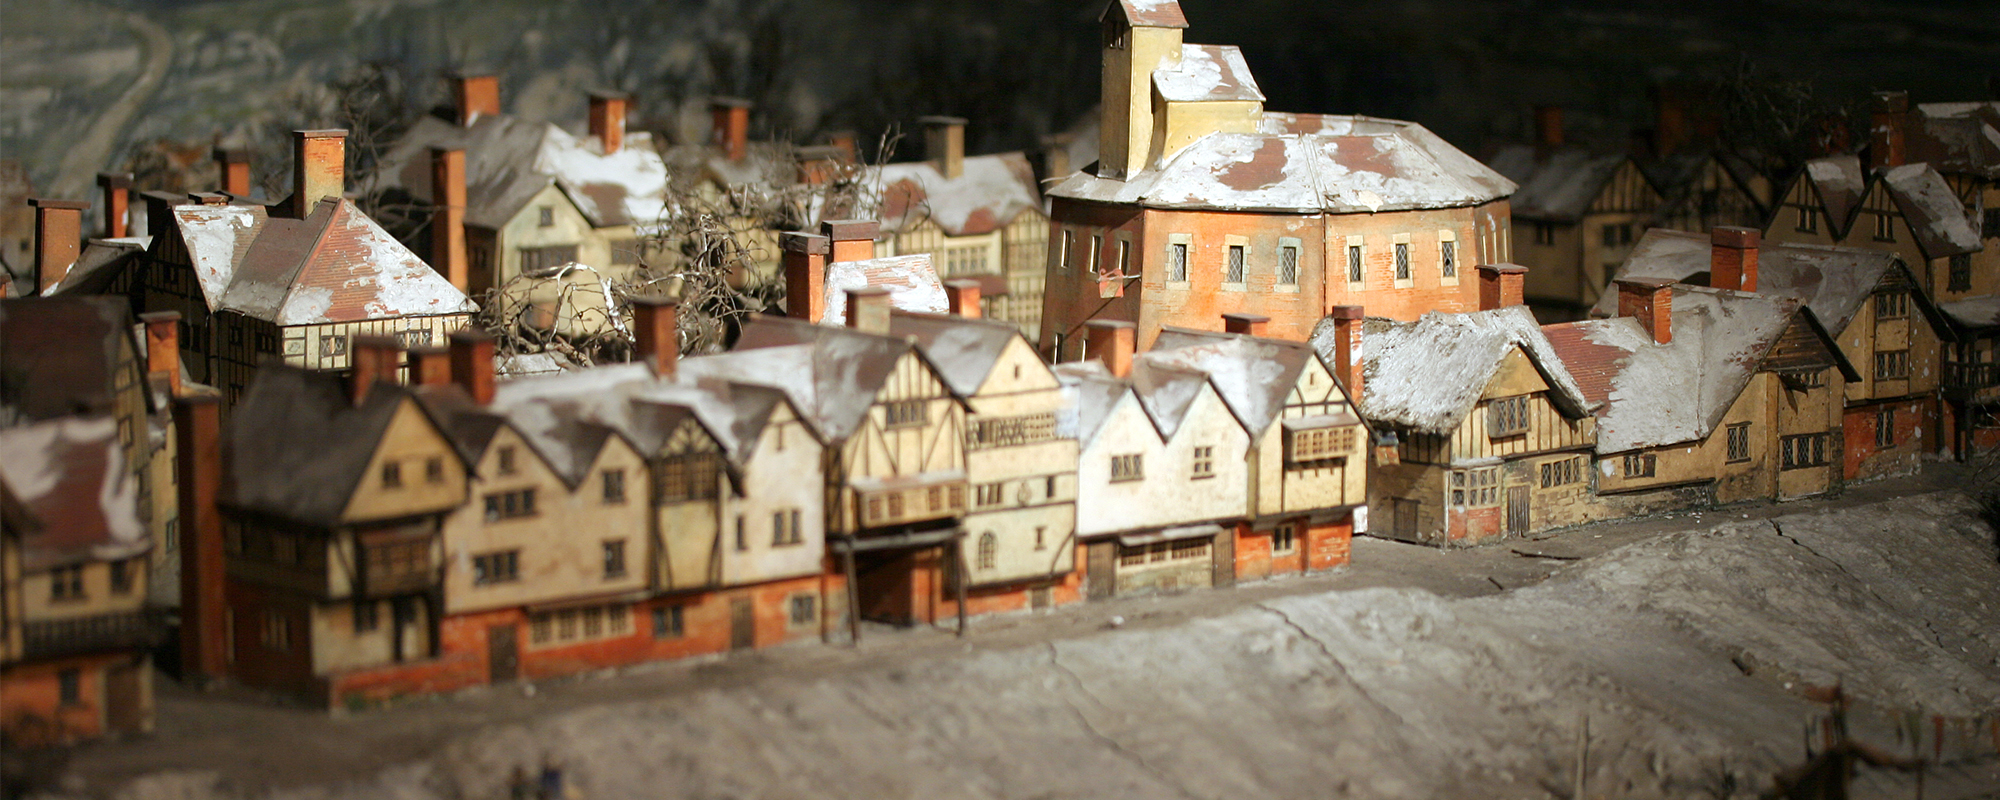 A model box of a wooden circular theatre surrounded by smaller Tudor buildings, along the bank of a snowy and frozen River Thames.